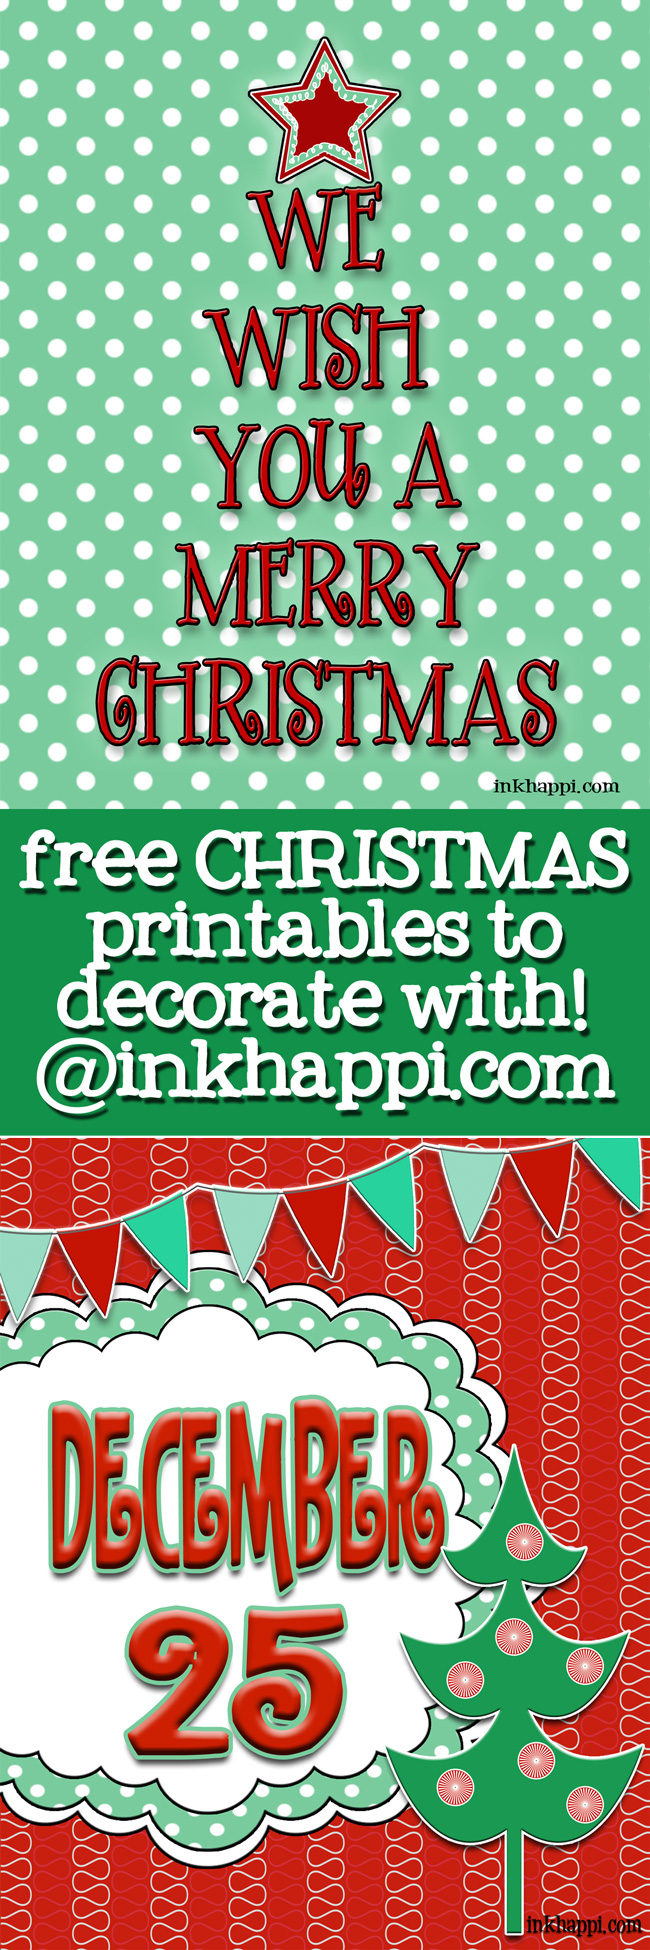 Some cute free Christmas printables that are great for decorating with. Love these!